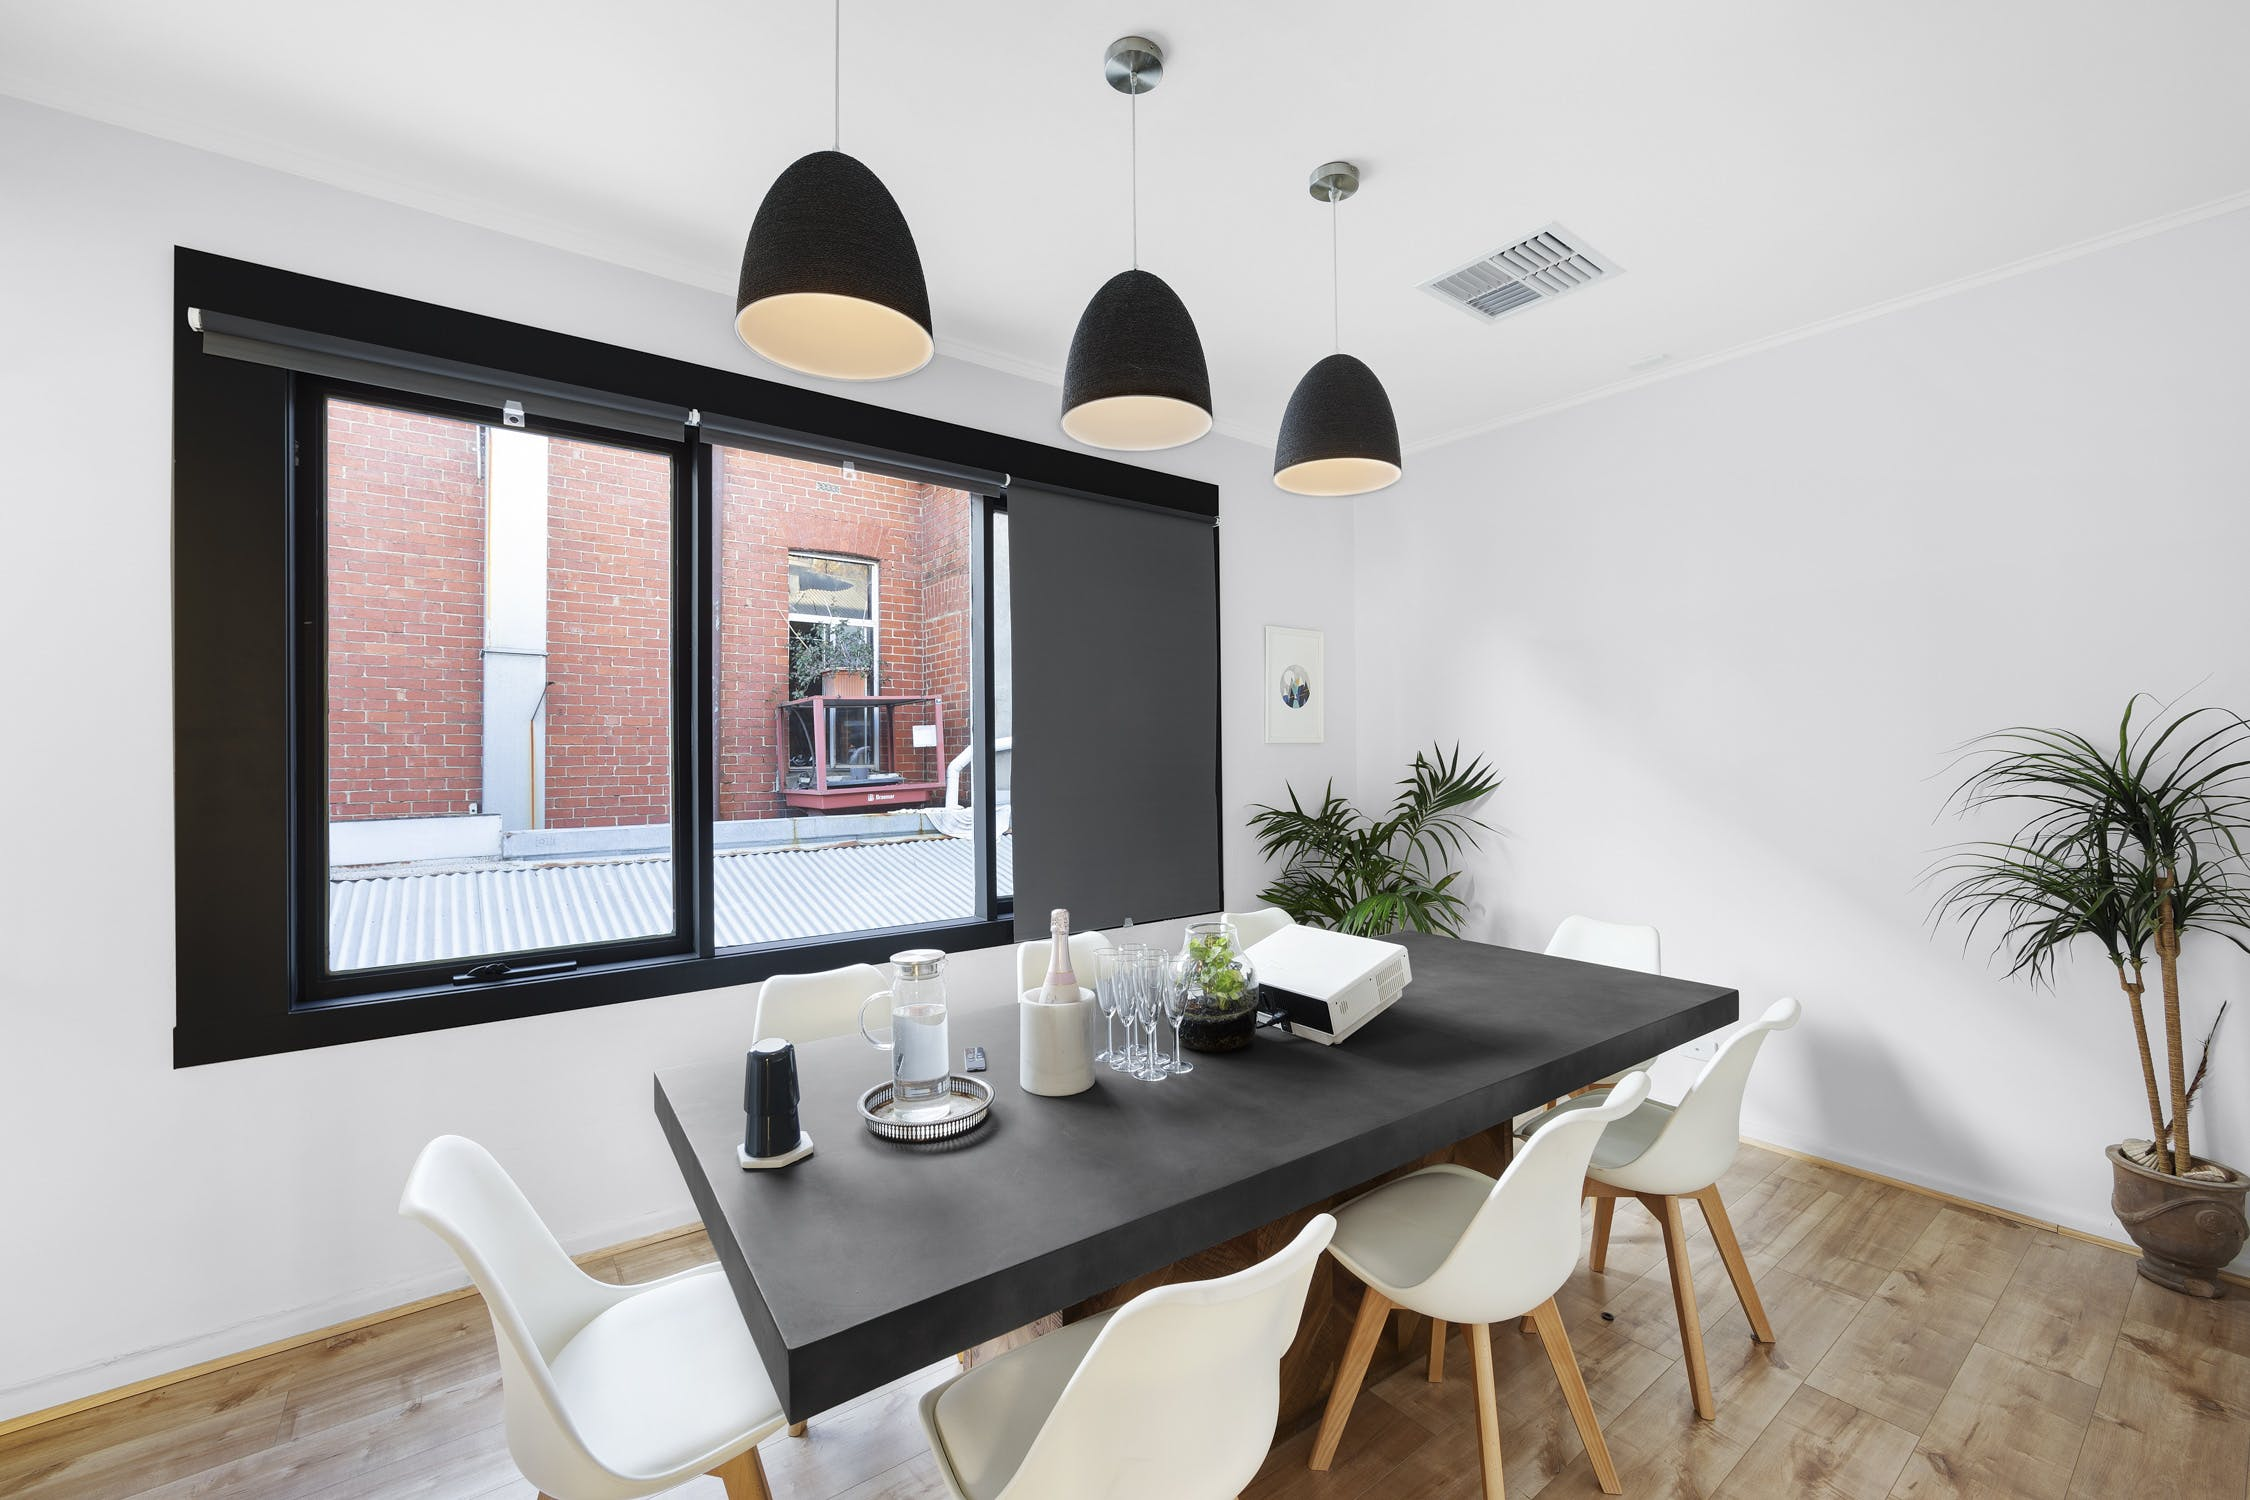 The Board Room, function room at Hive Workspace, image 1